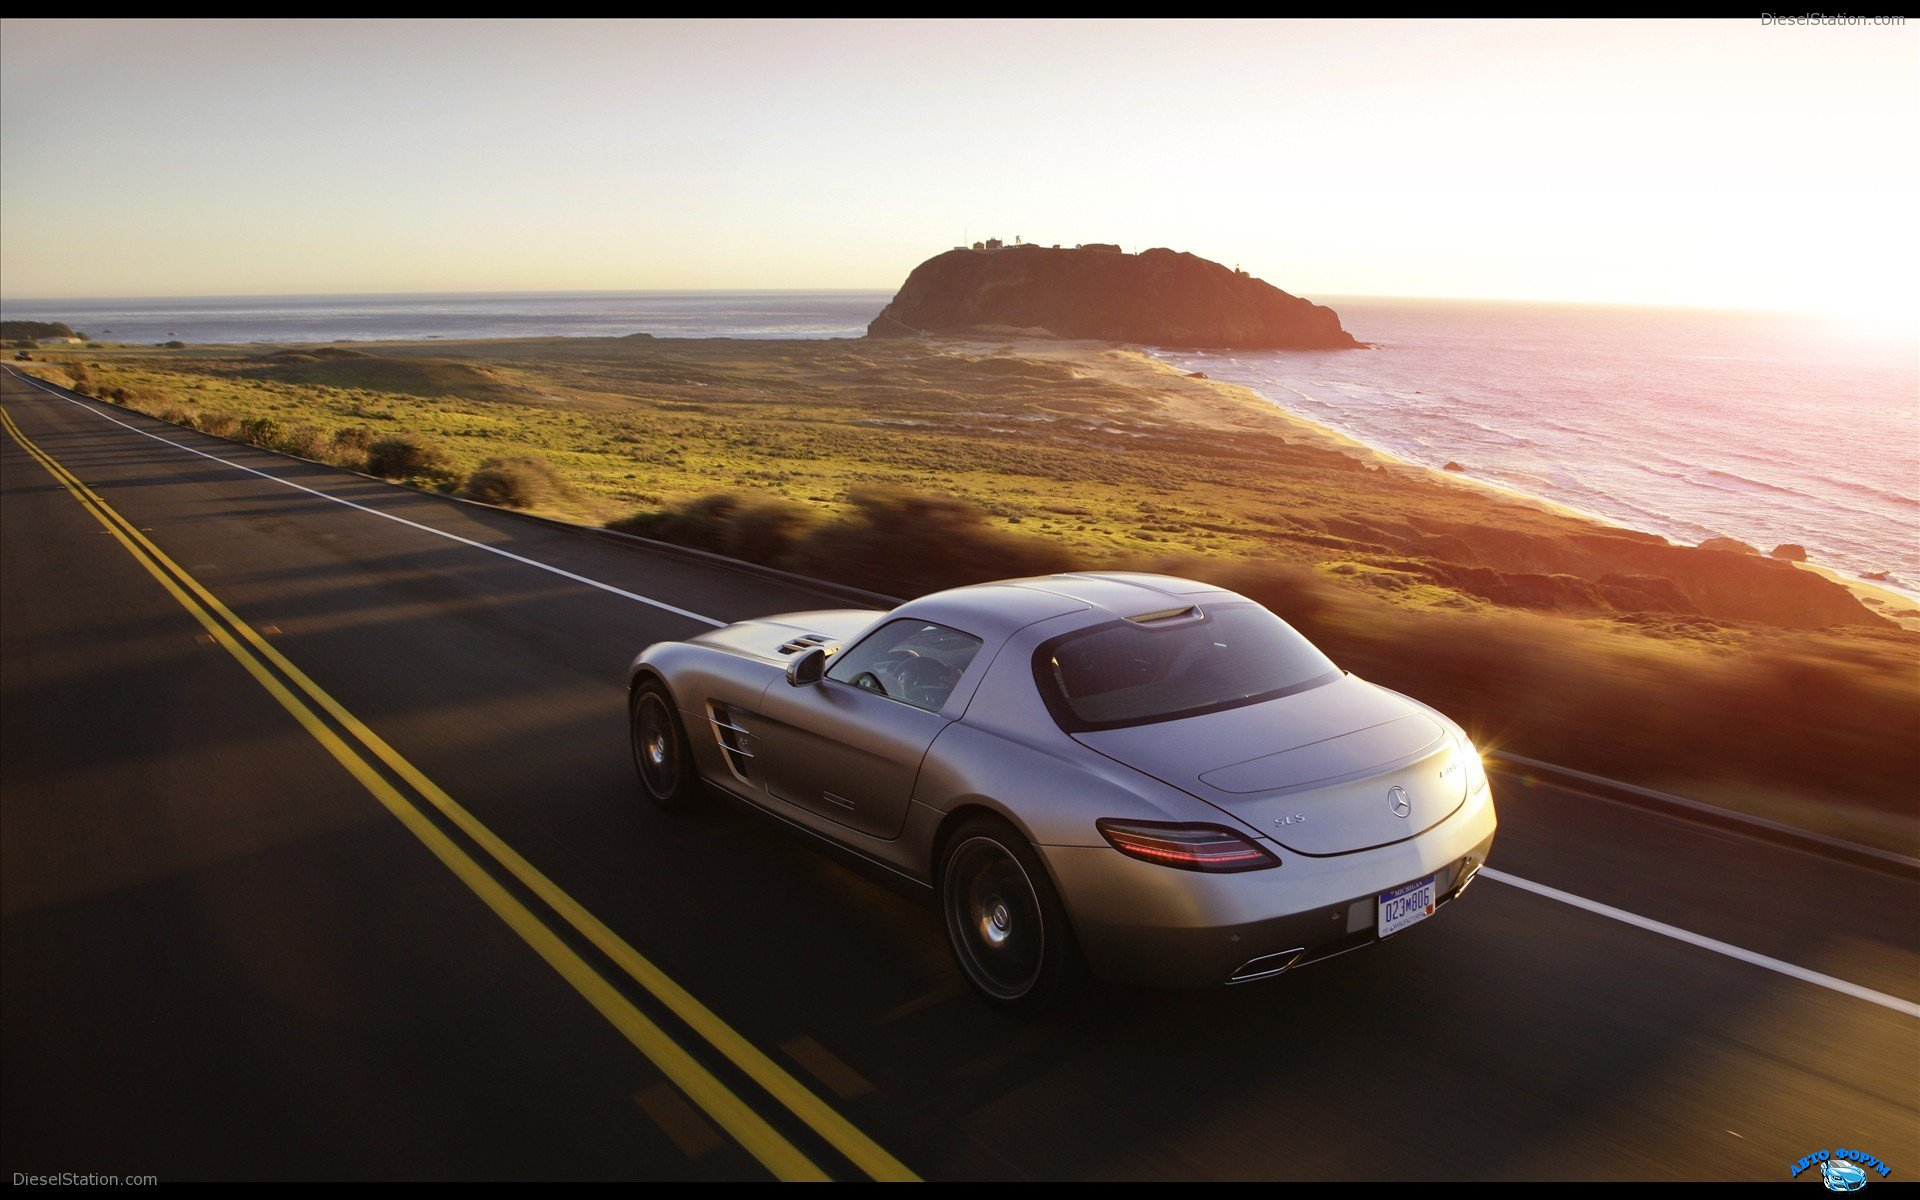 Mercedes-Benz-SLS-AMG-2011-widescreen-03.jpg